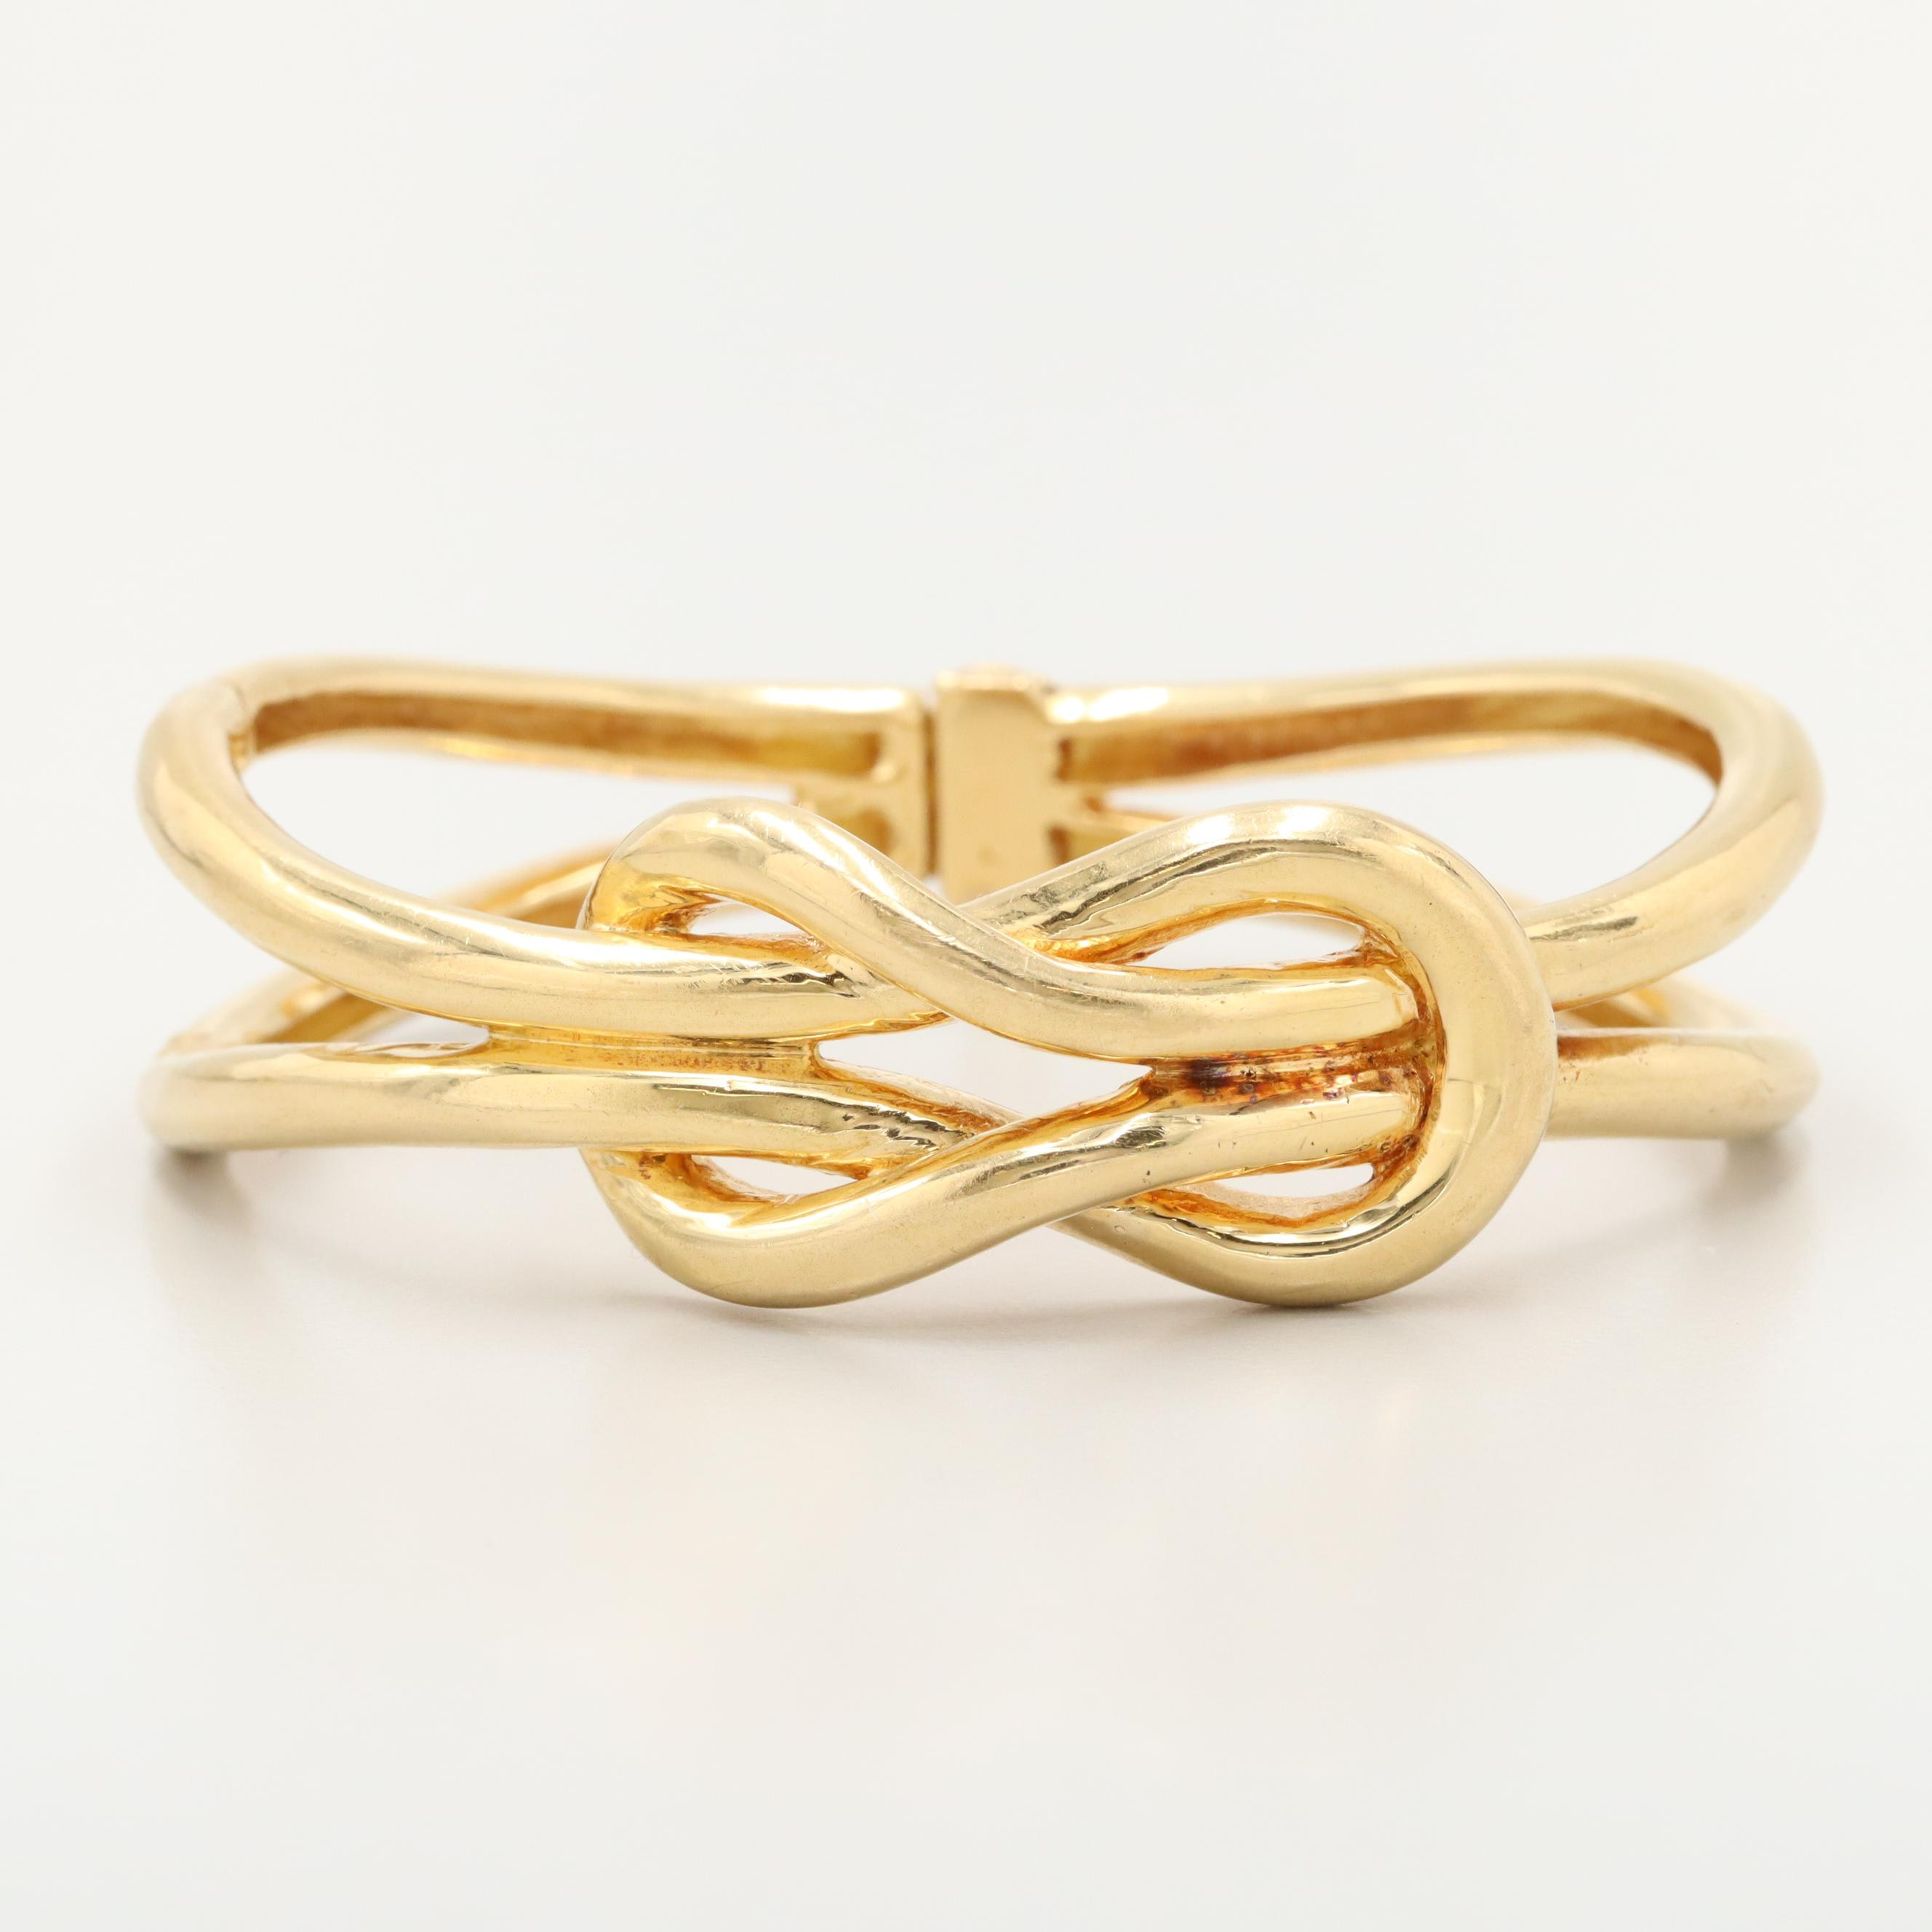 18K Yellow Gold Hinged Bangle Sailor's Knot Bracelet